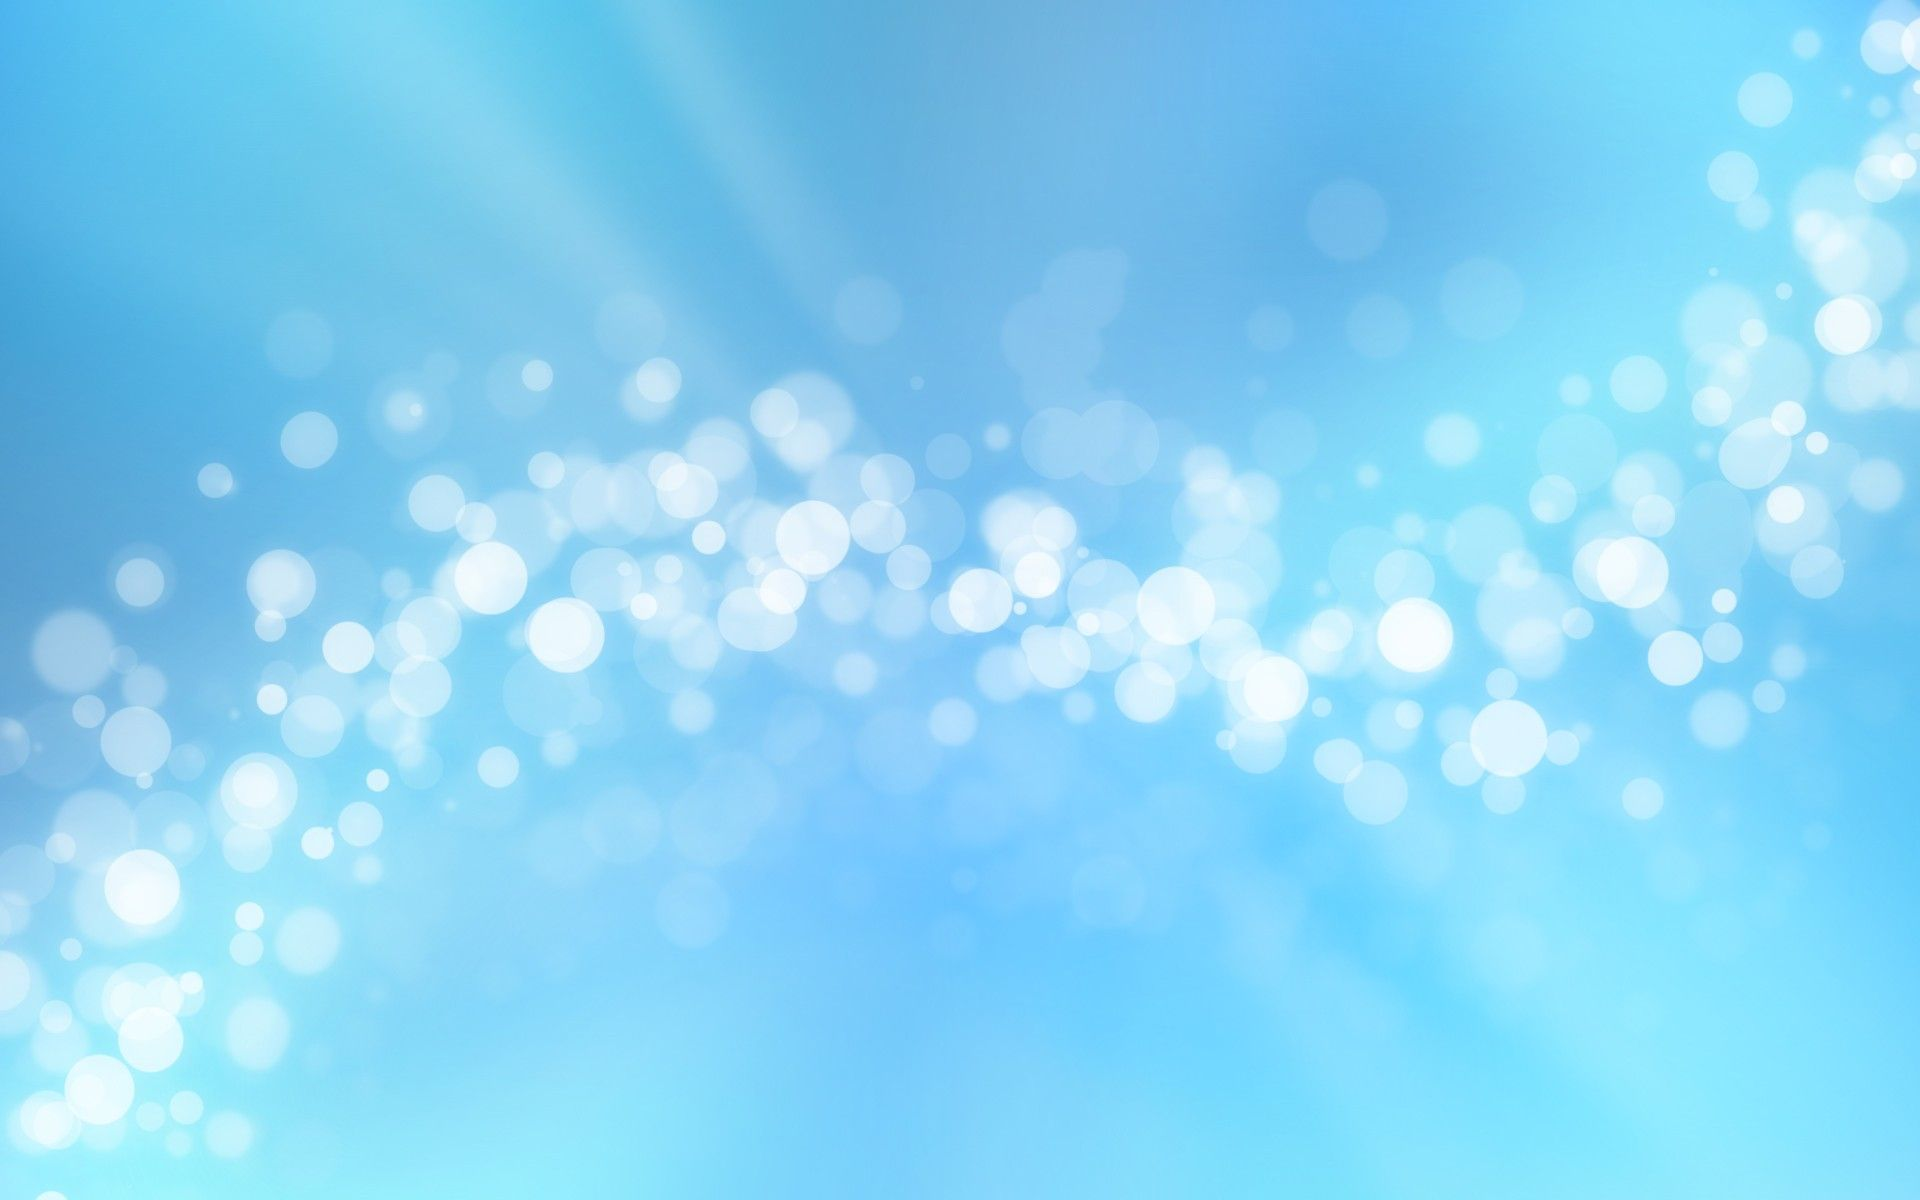 abstract blue backgrounds silent happiness pinterest blue | hd